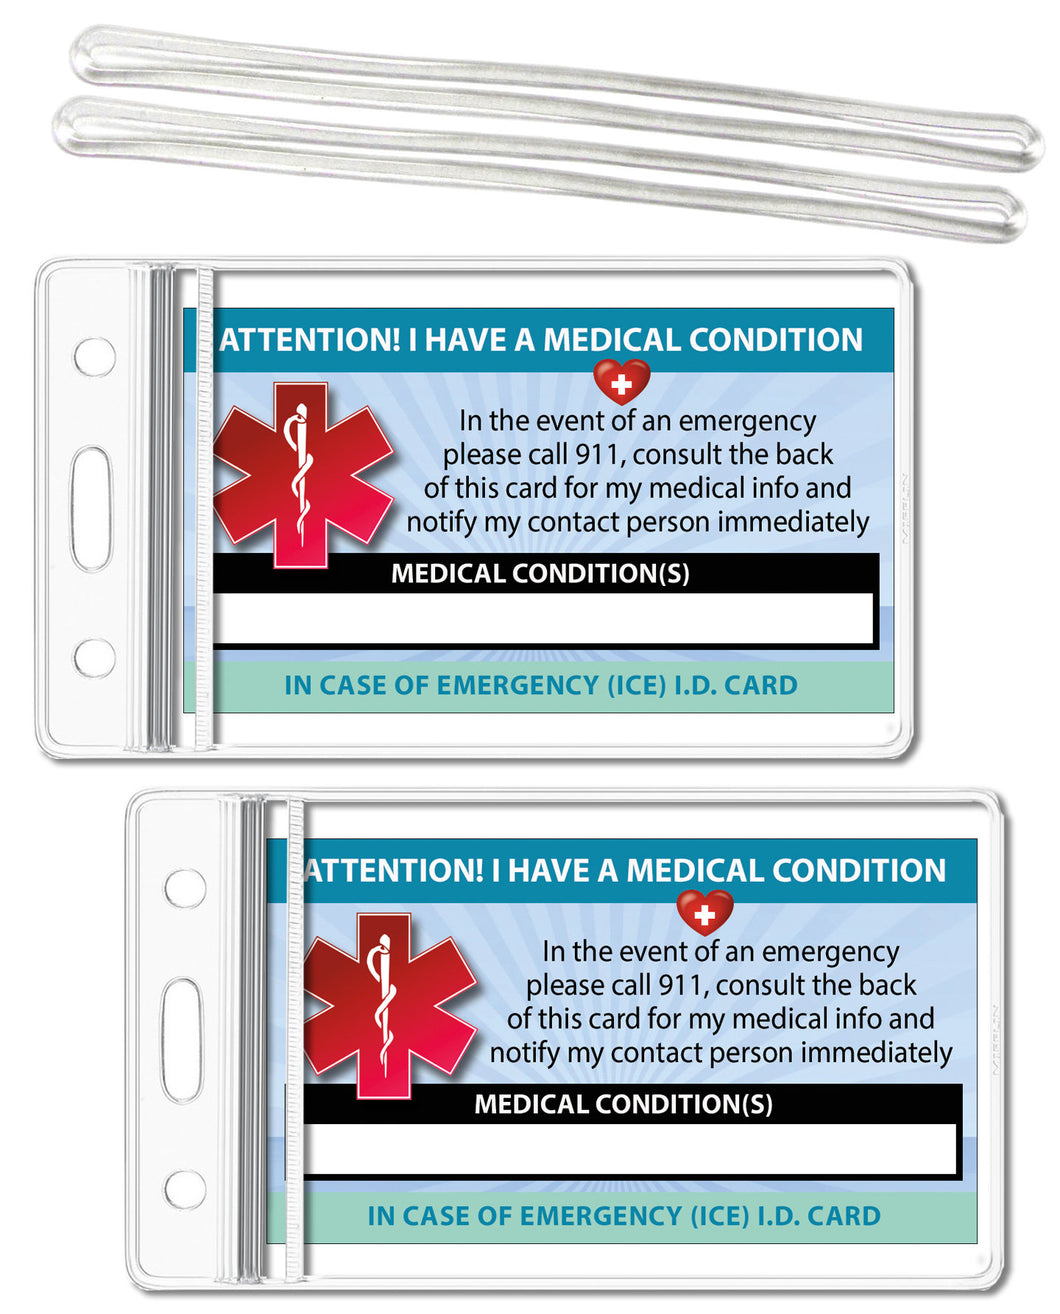 2 Pk. Medical Condition ICE Heavy Weight Cardstock Alert Emergency I.D. Identification Contact Card - Self Laminate or Plastic Pouch